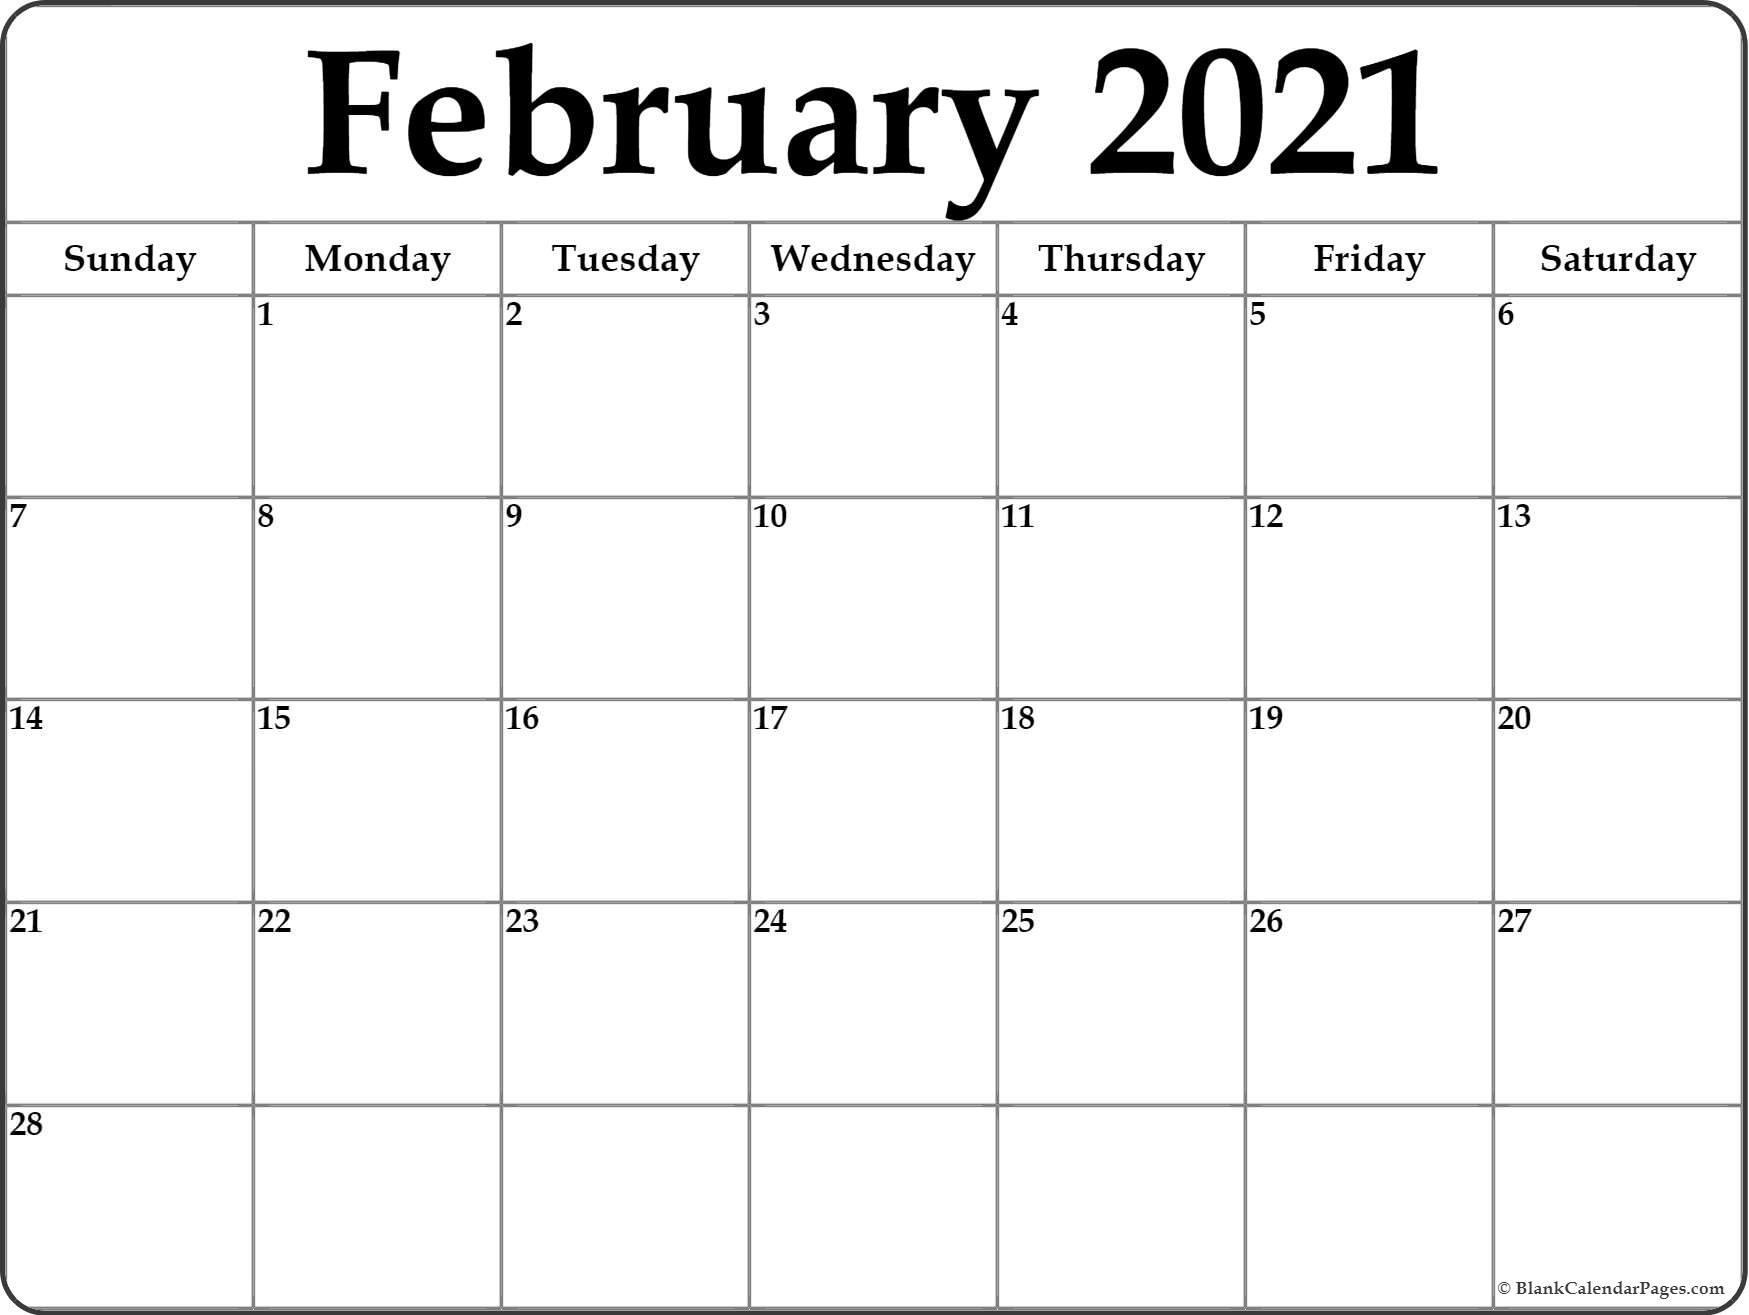 February 2021 Calendar | Free Printable Monthly Calendars  Date Code Calendar 2021